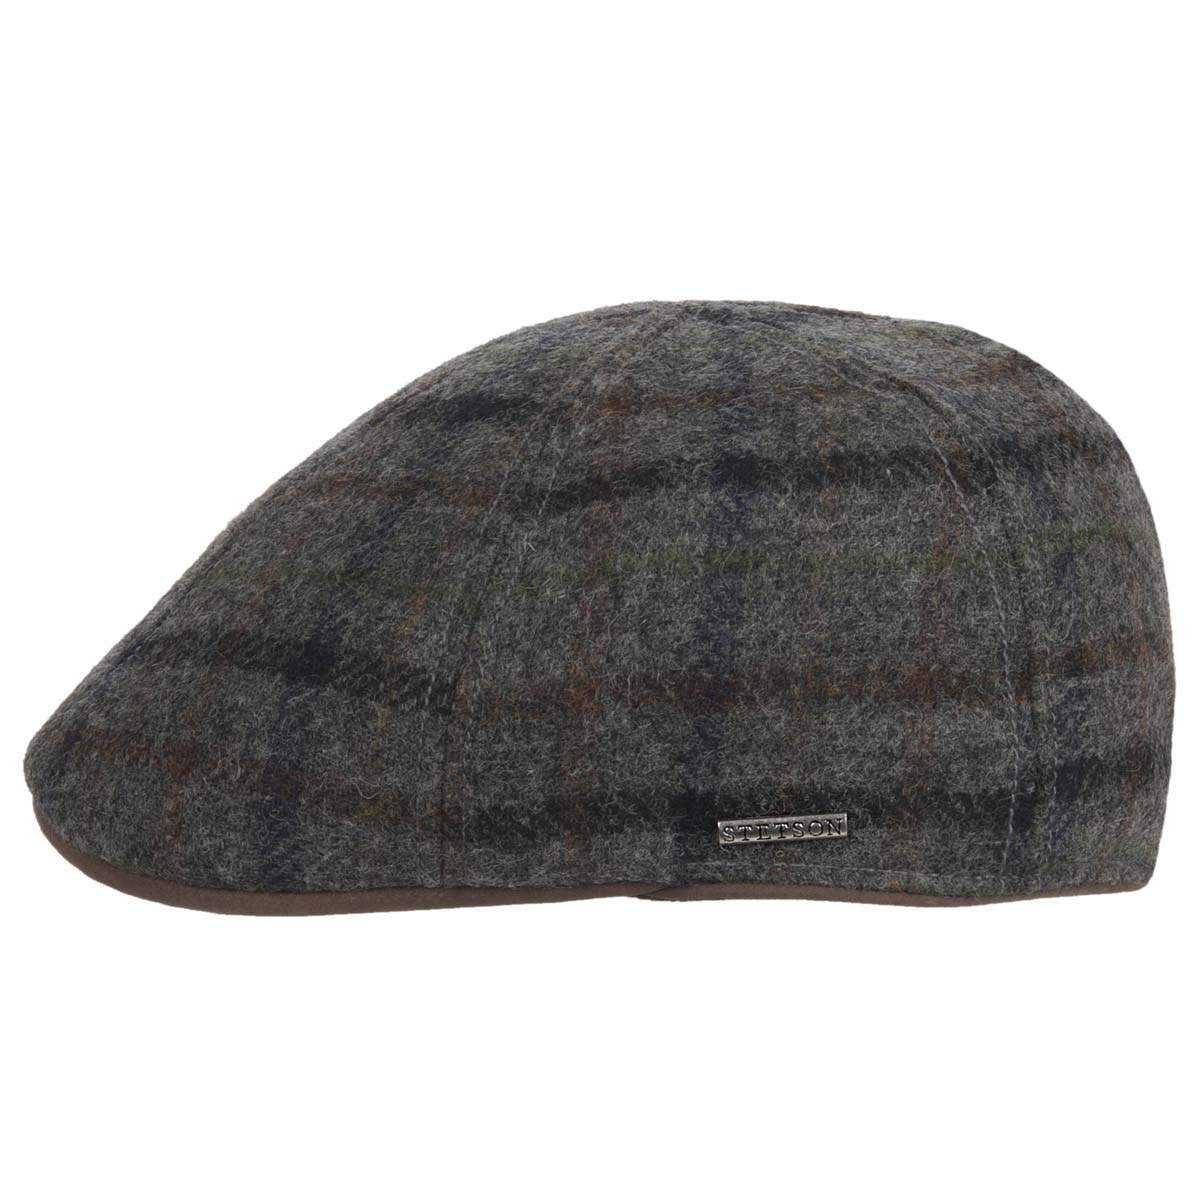 how to clean a wool flat cap